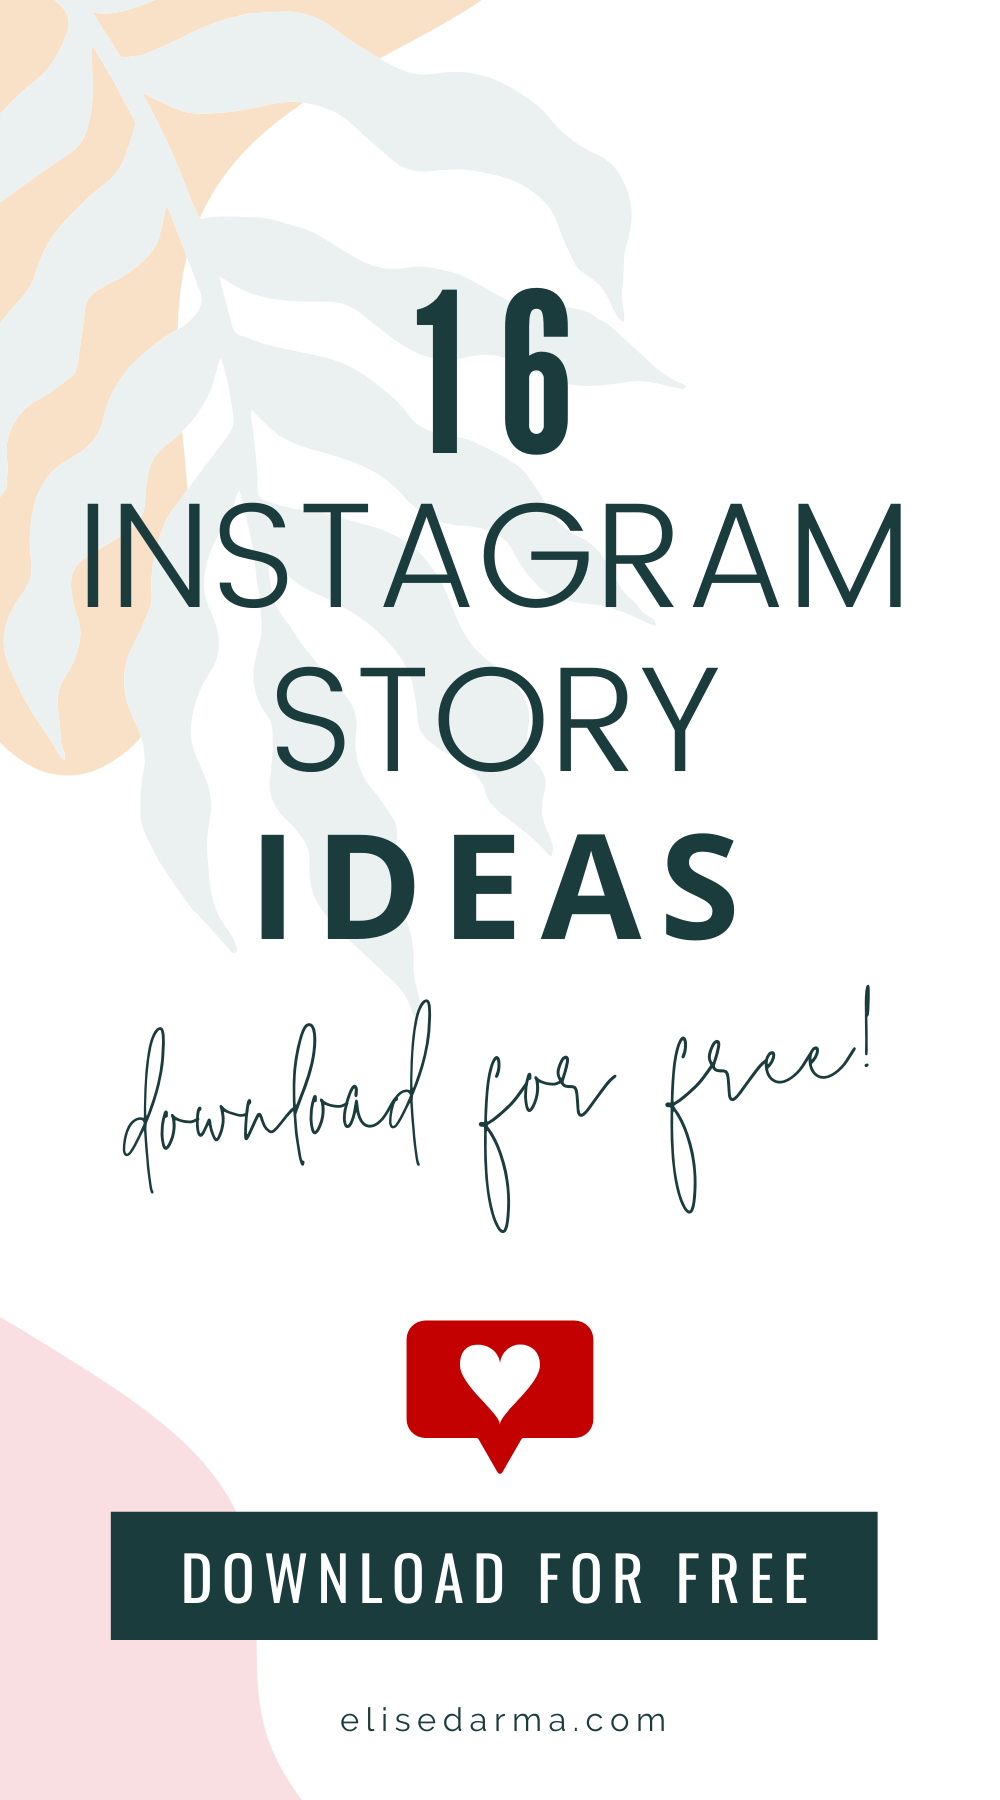 [Free Download] 16 Instagram Story Ideas For Your Business